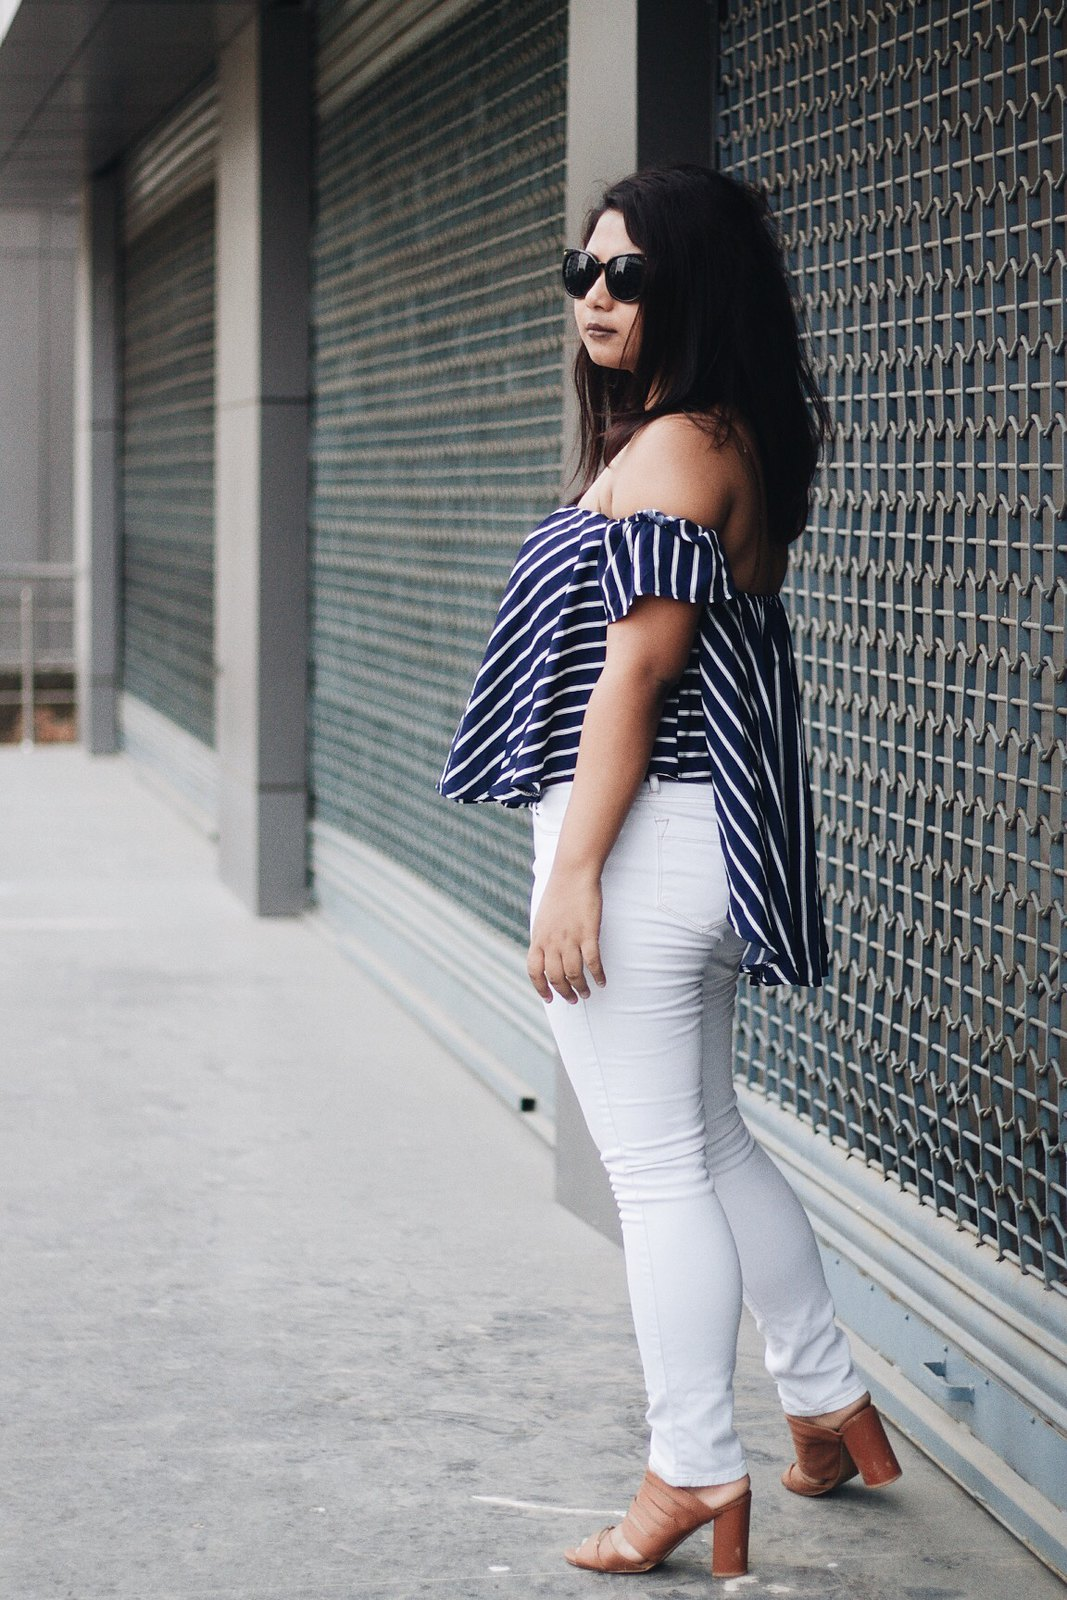 Selestyme wearing Rosegal Off the Shoulder top with white jeans